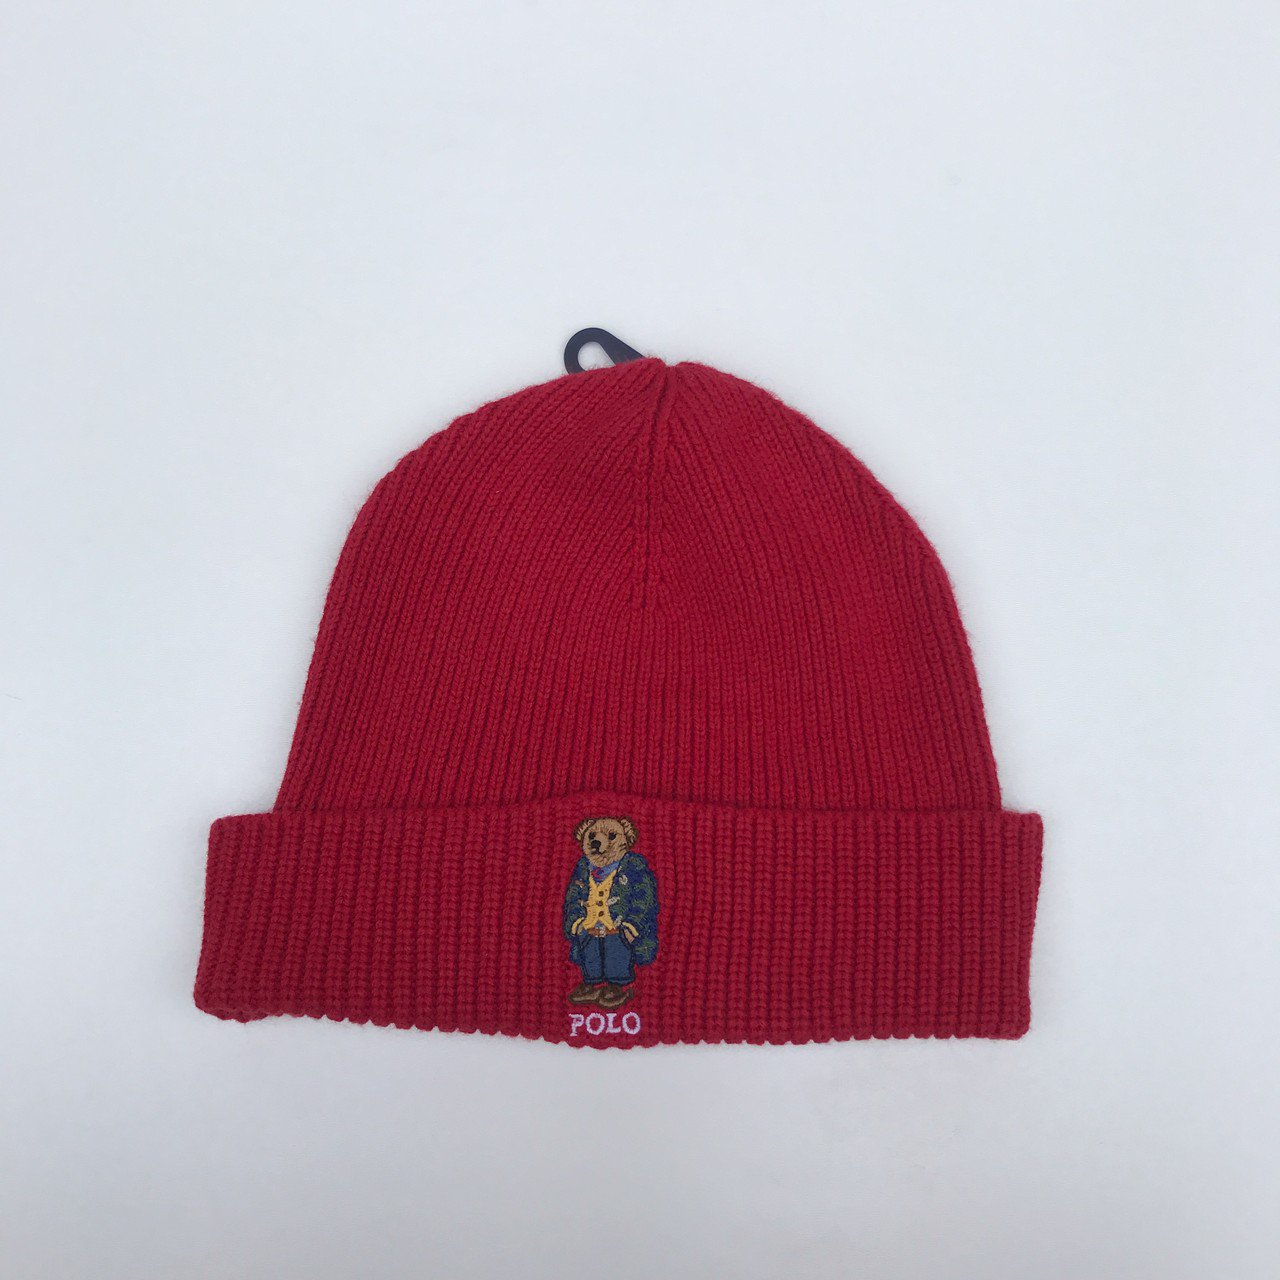 RALPH LAUREN POLO BEAR BEANIE 🔥 BRAND NEW with tags • Red • - Depop 9cb4015b7af